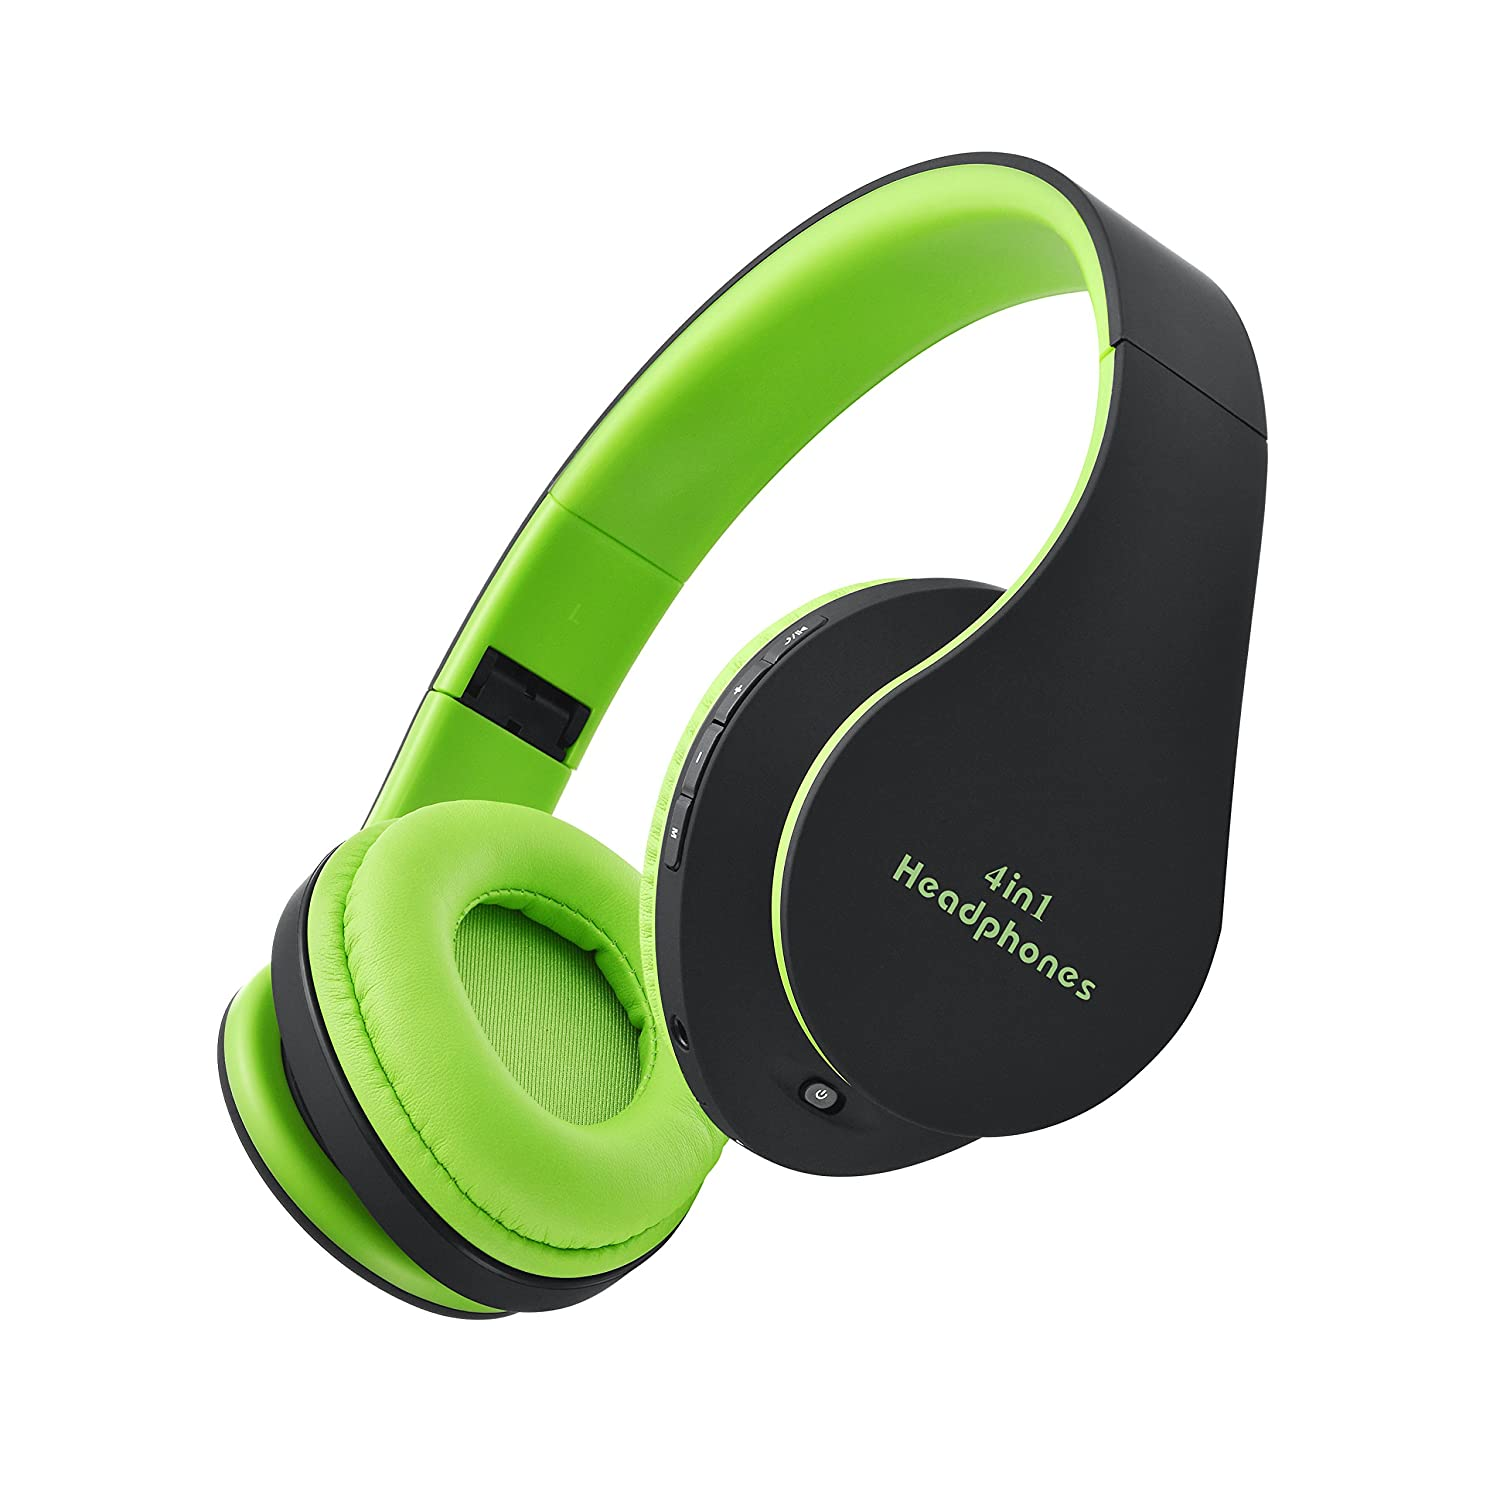 Zhang Meiling Bluetooth Headset Earbuds HiFi Headset in-Ear Headphone Noise Reduction Headset,Sports Portable Bluetooth Earphones for Android iOS-15